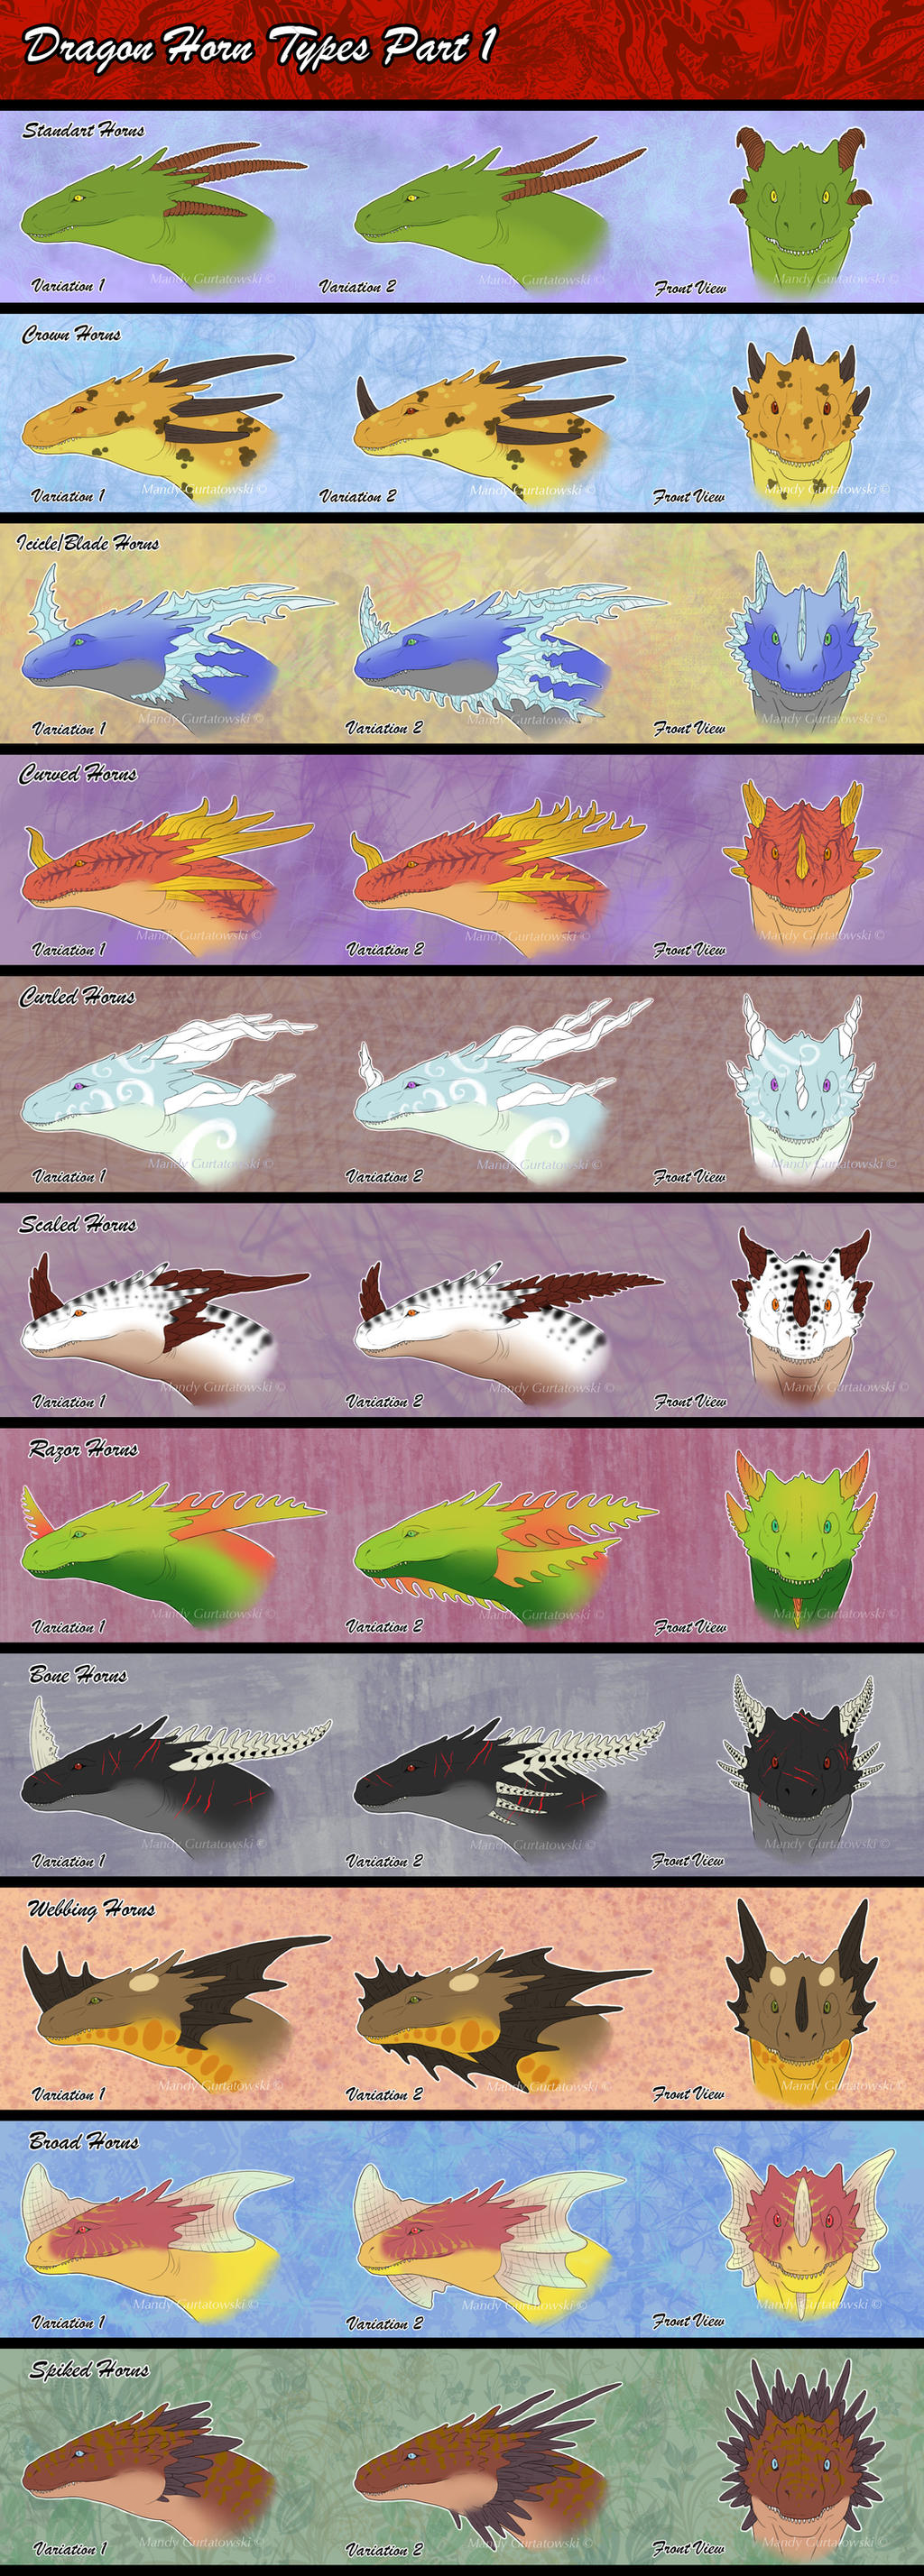 Dragon Horn Types Part1 By Araless On DeviantArt